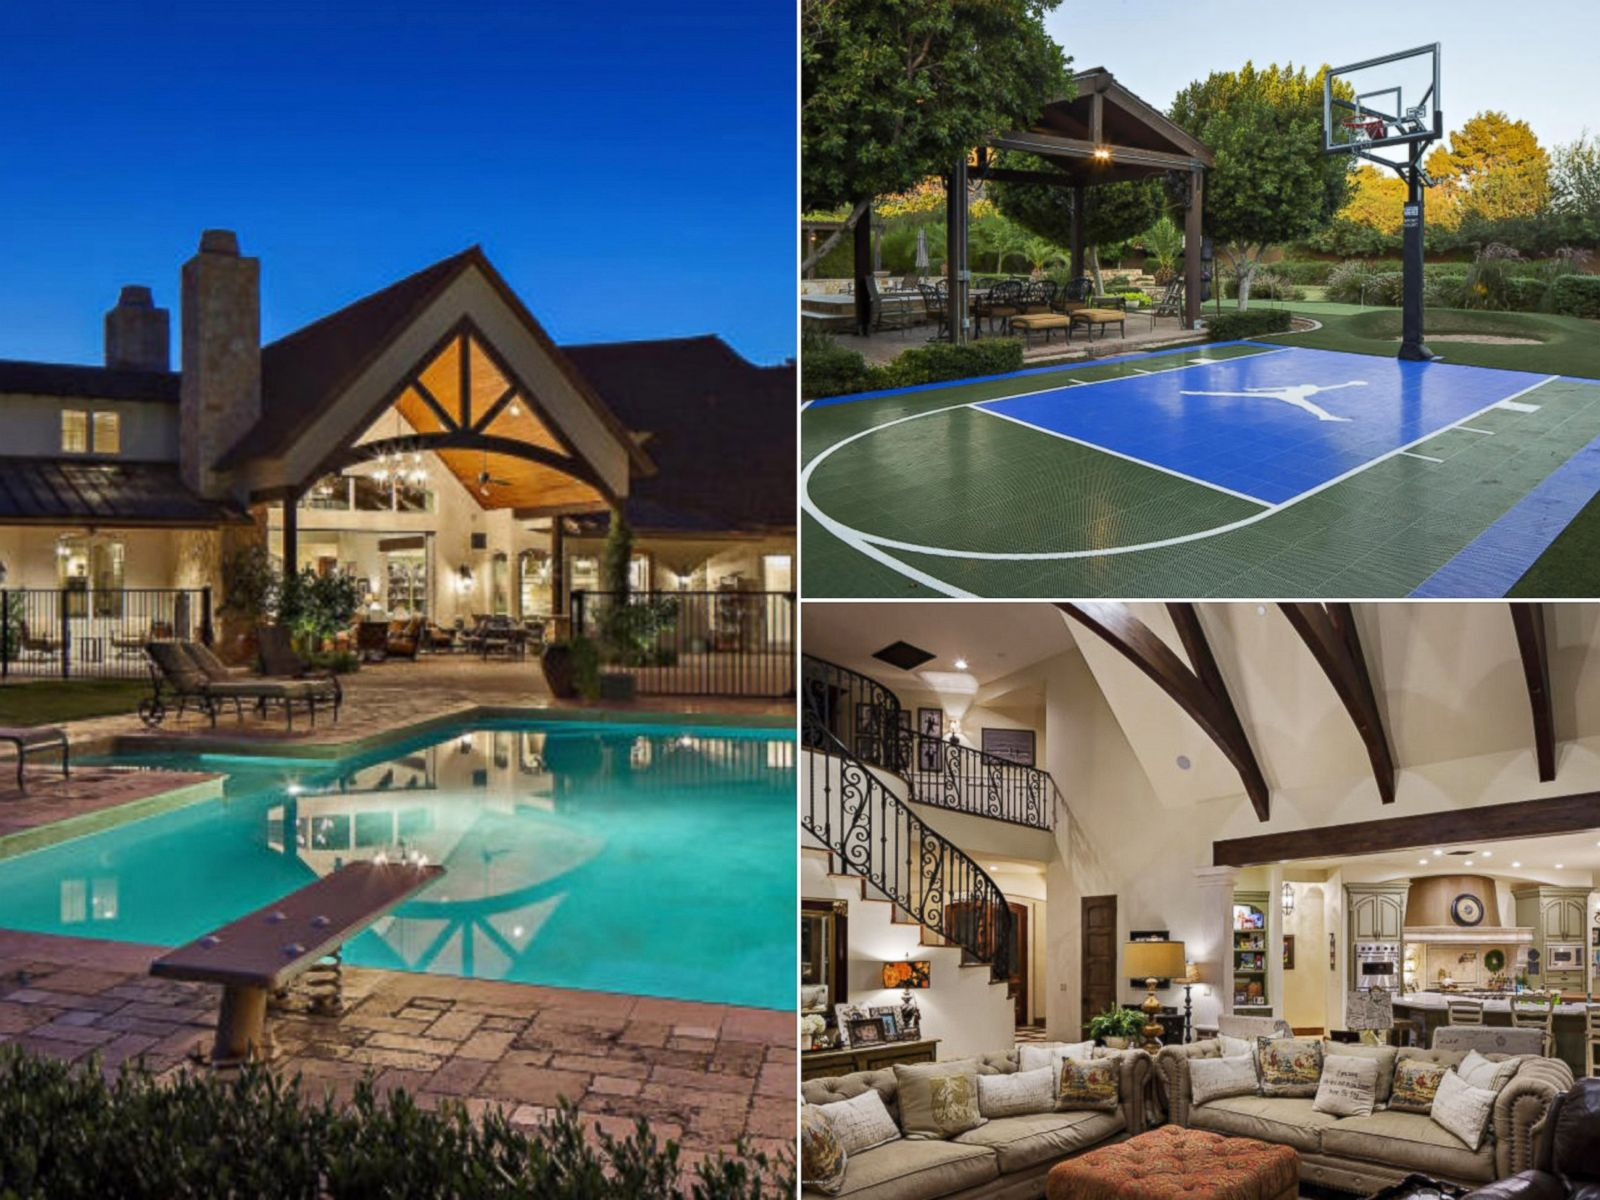 March madness homes with basketball courts for sale for Basketball court for home